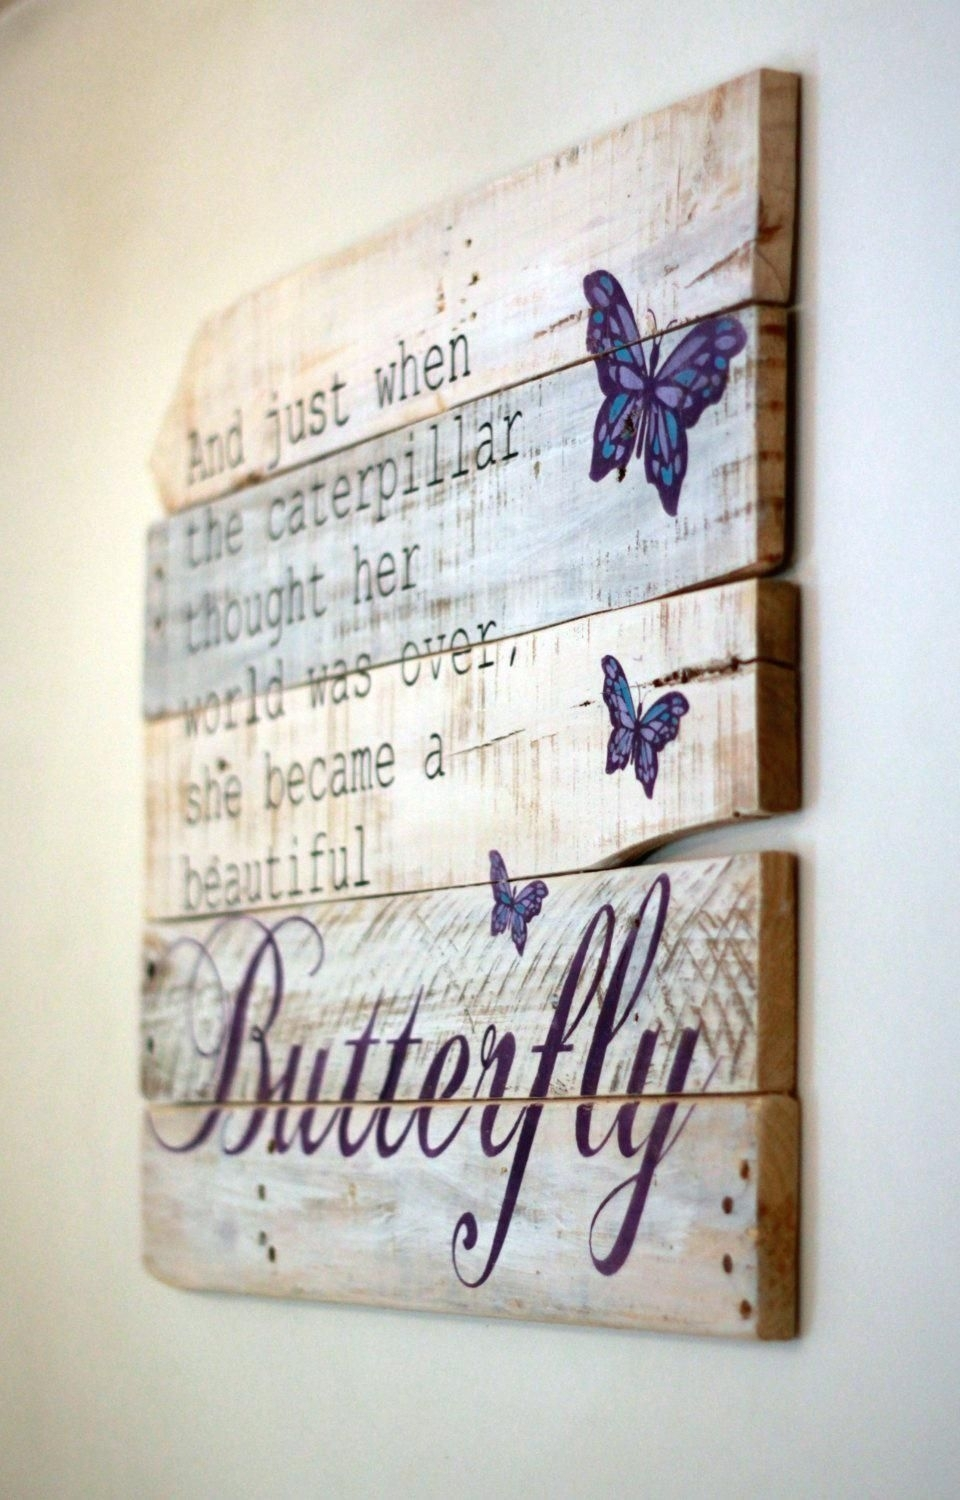 20 Top Wooden Wall Art Quotes Wall Art Ideas, Wooden Wall Art With Regard To Most Recently Released Wood Wall Art Quotes (View 1 of 20)